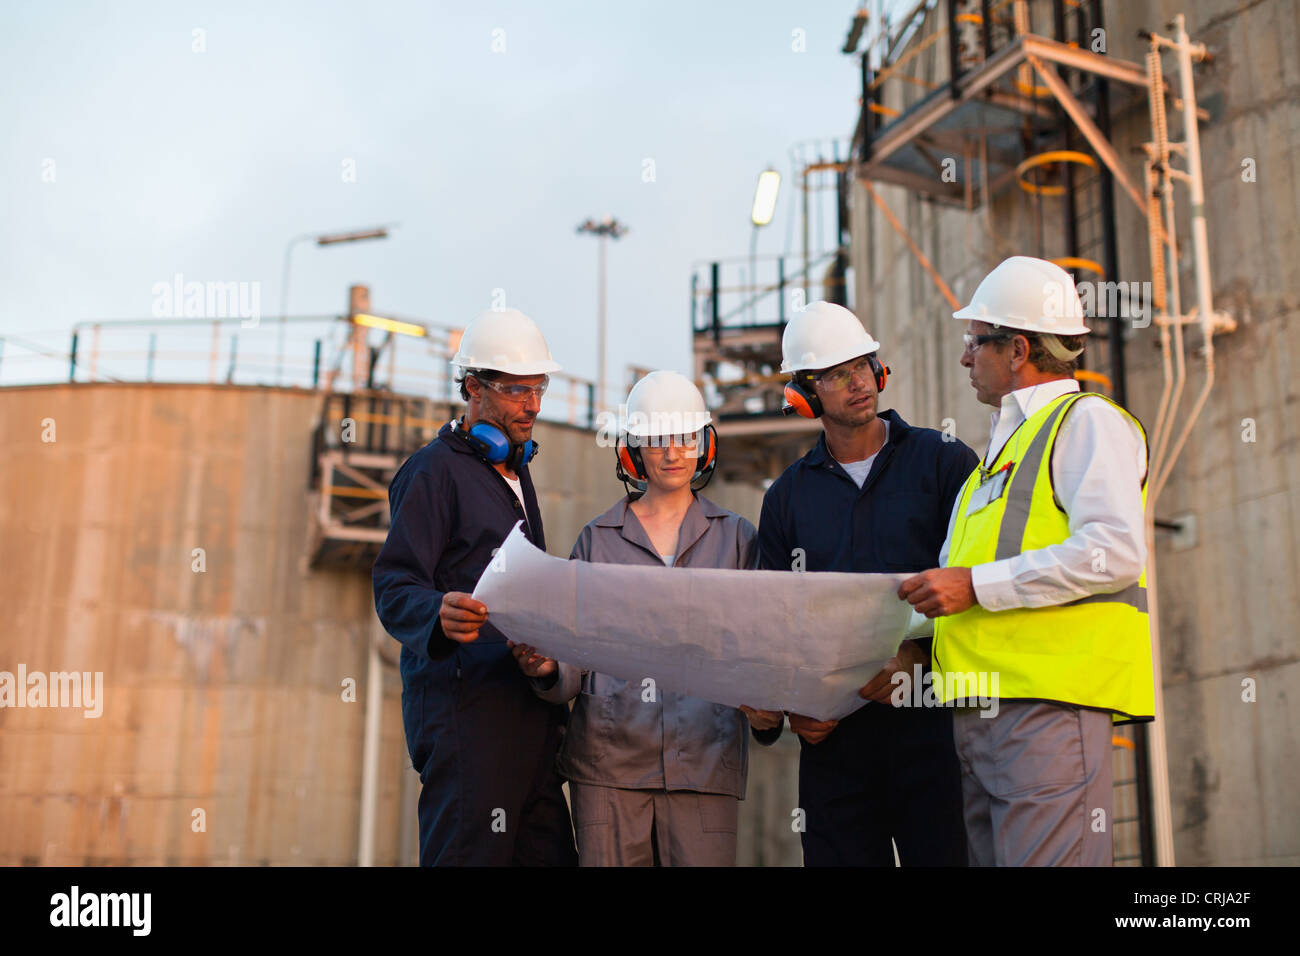 Workers reading blueprints at plant Stock Photo